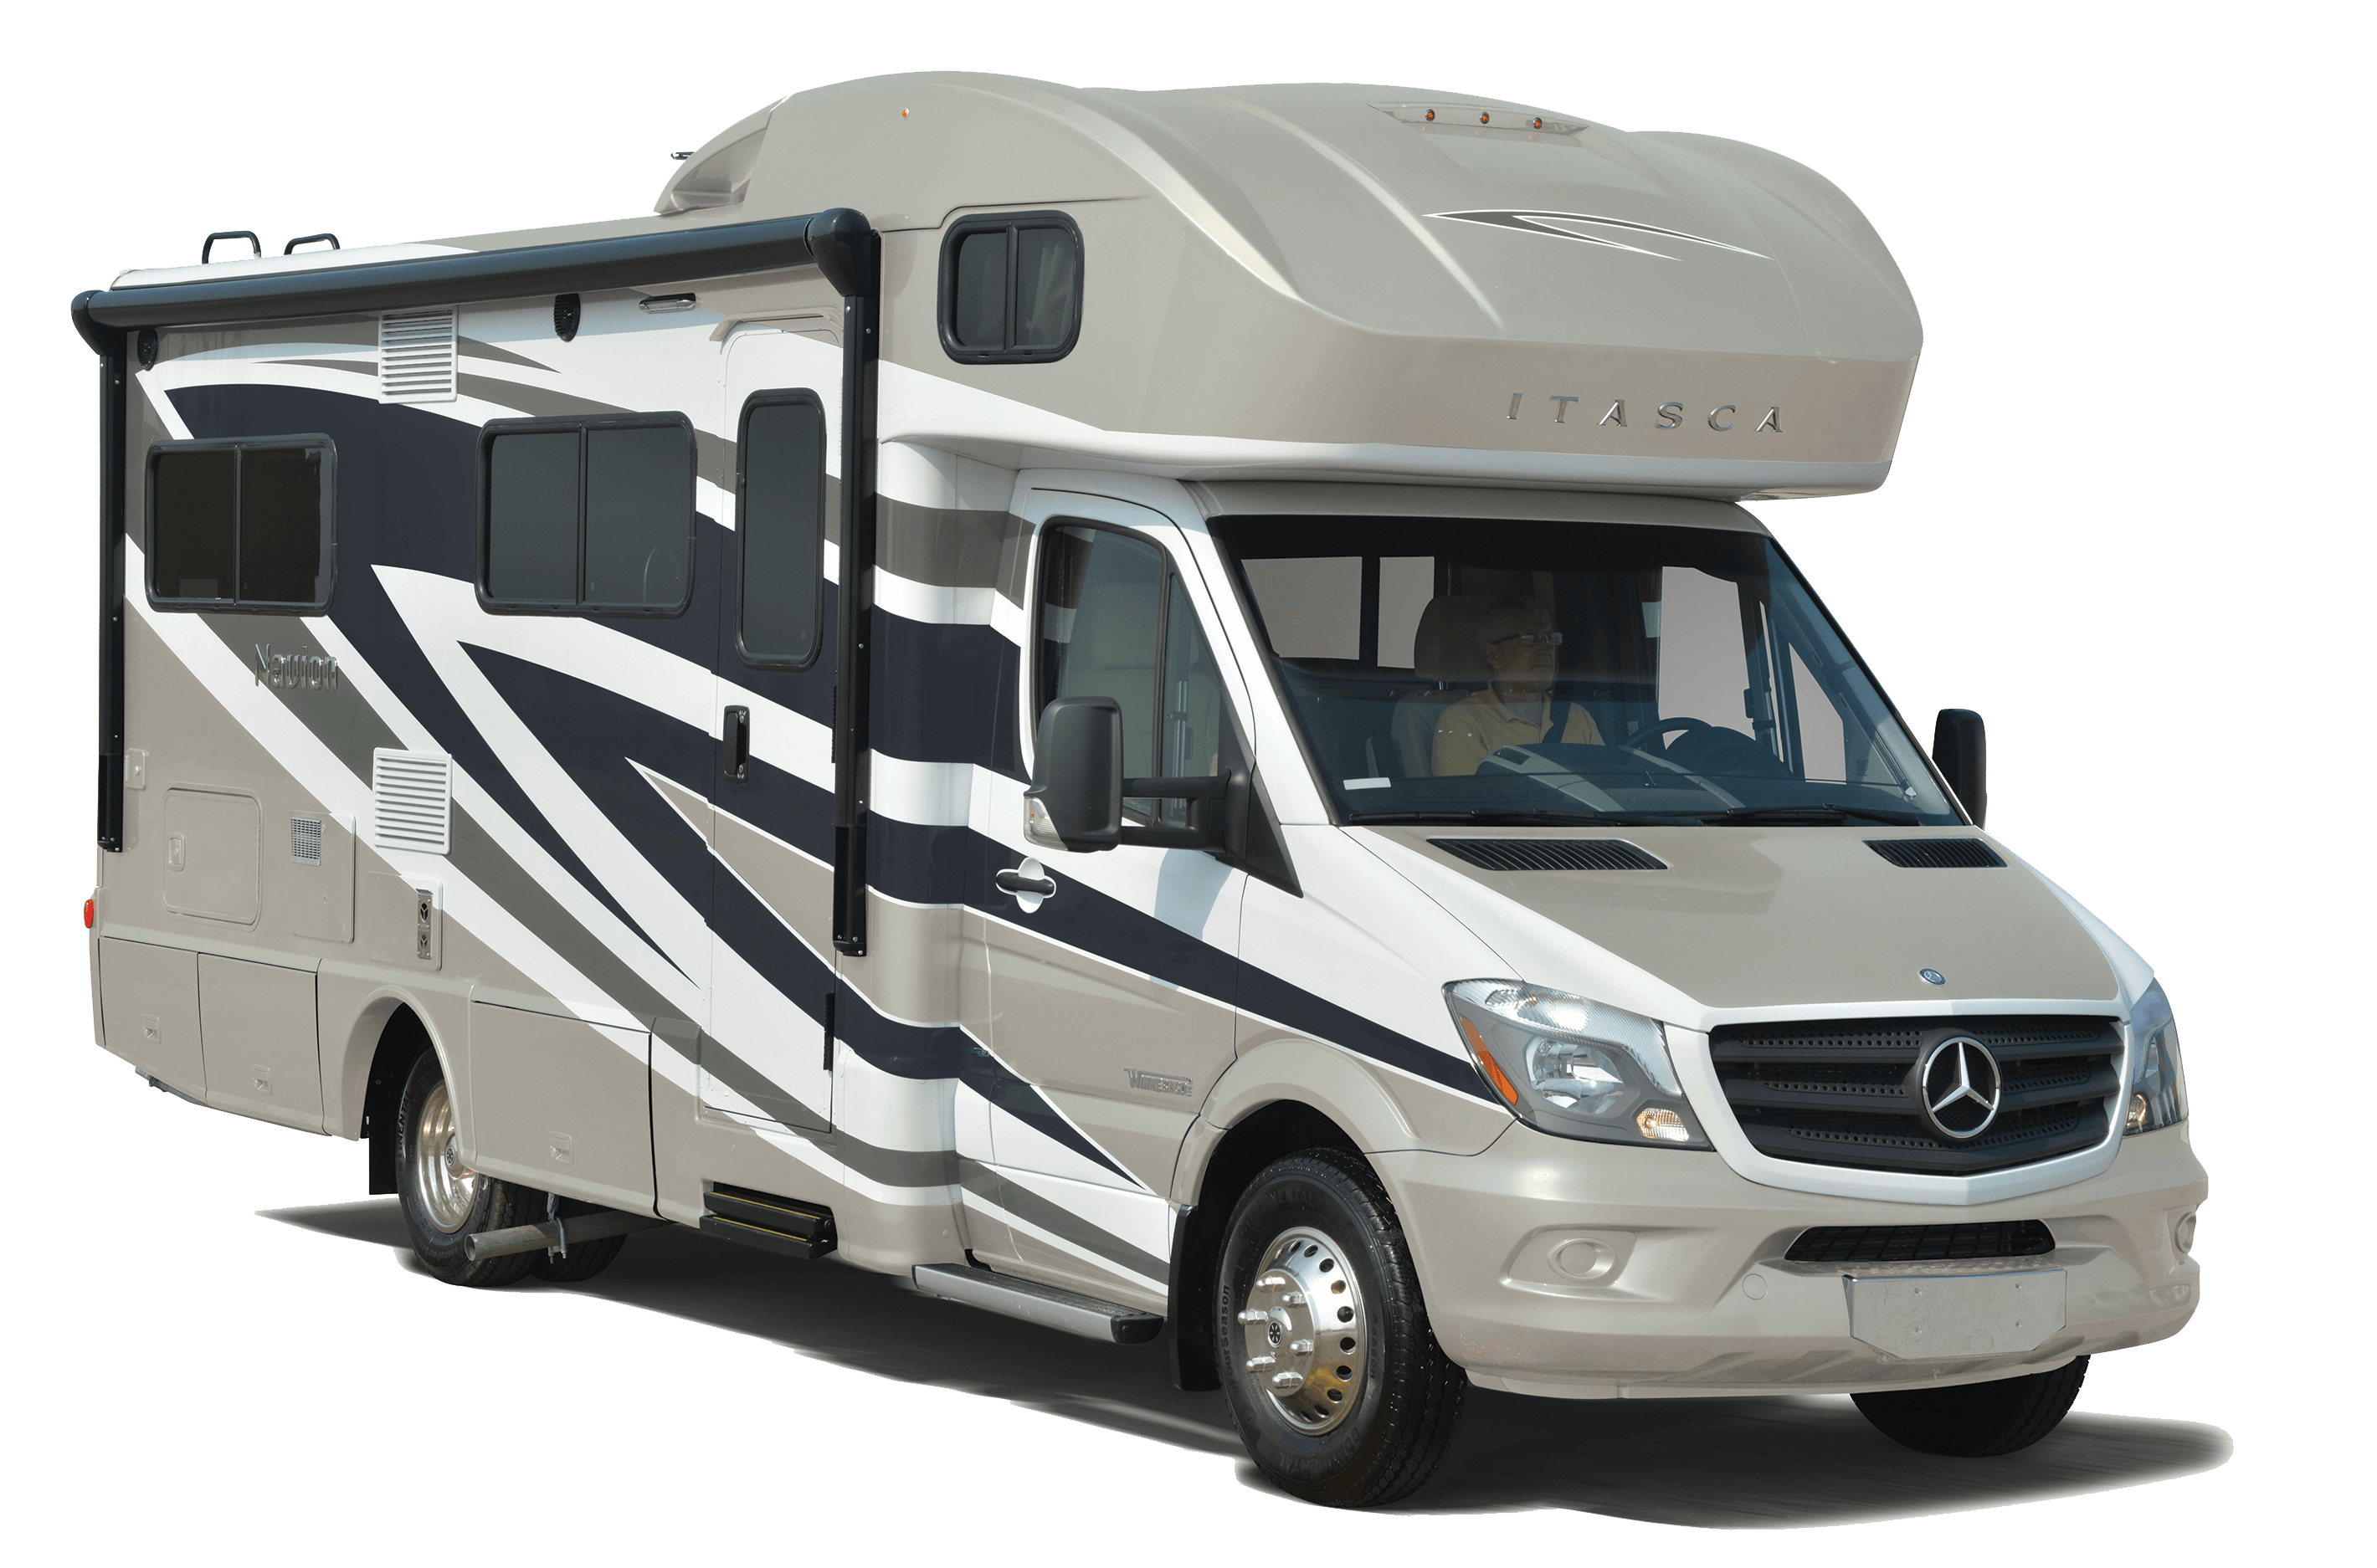 Rv Mercedes >> Navion Class C Motor Home | General RV Center